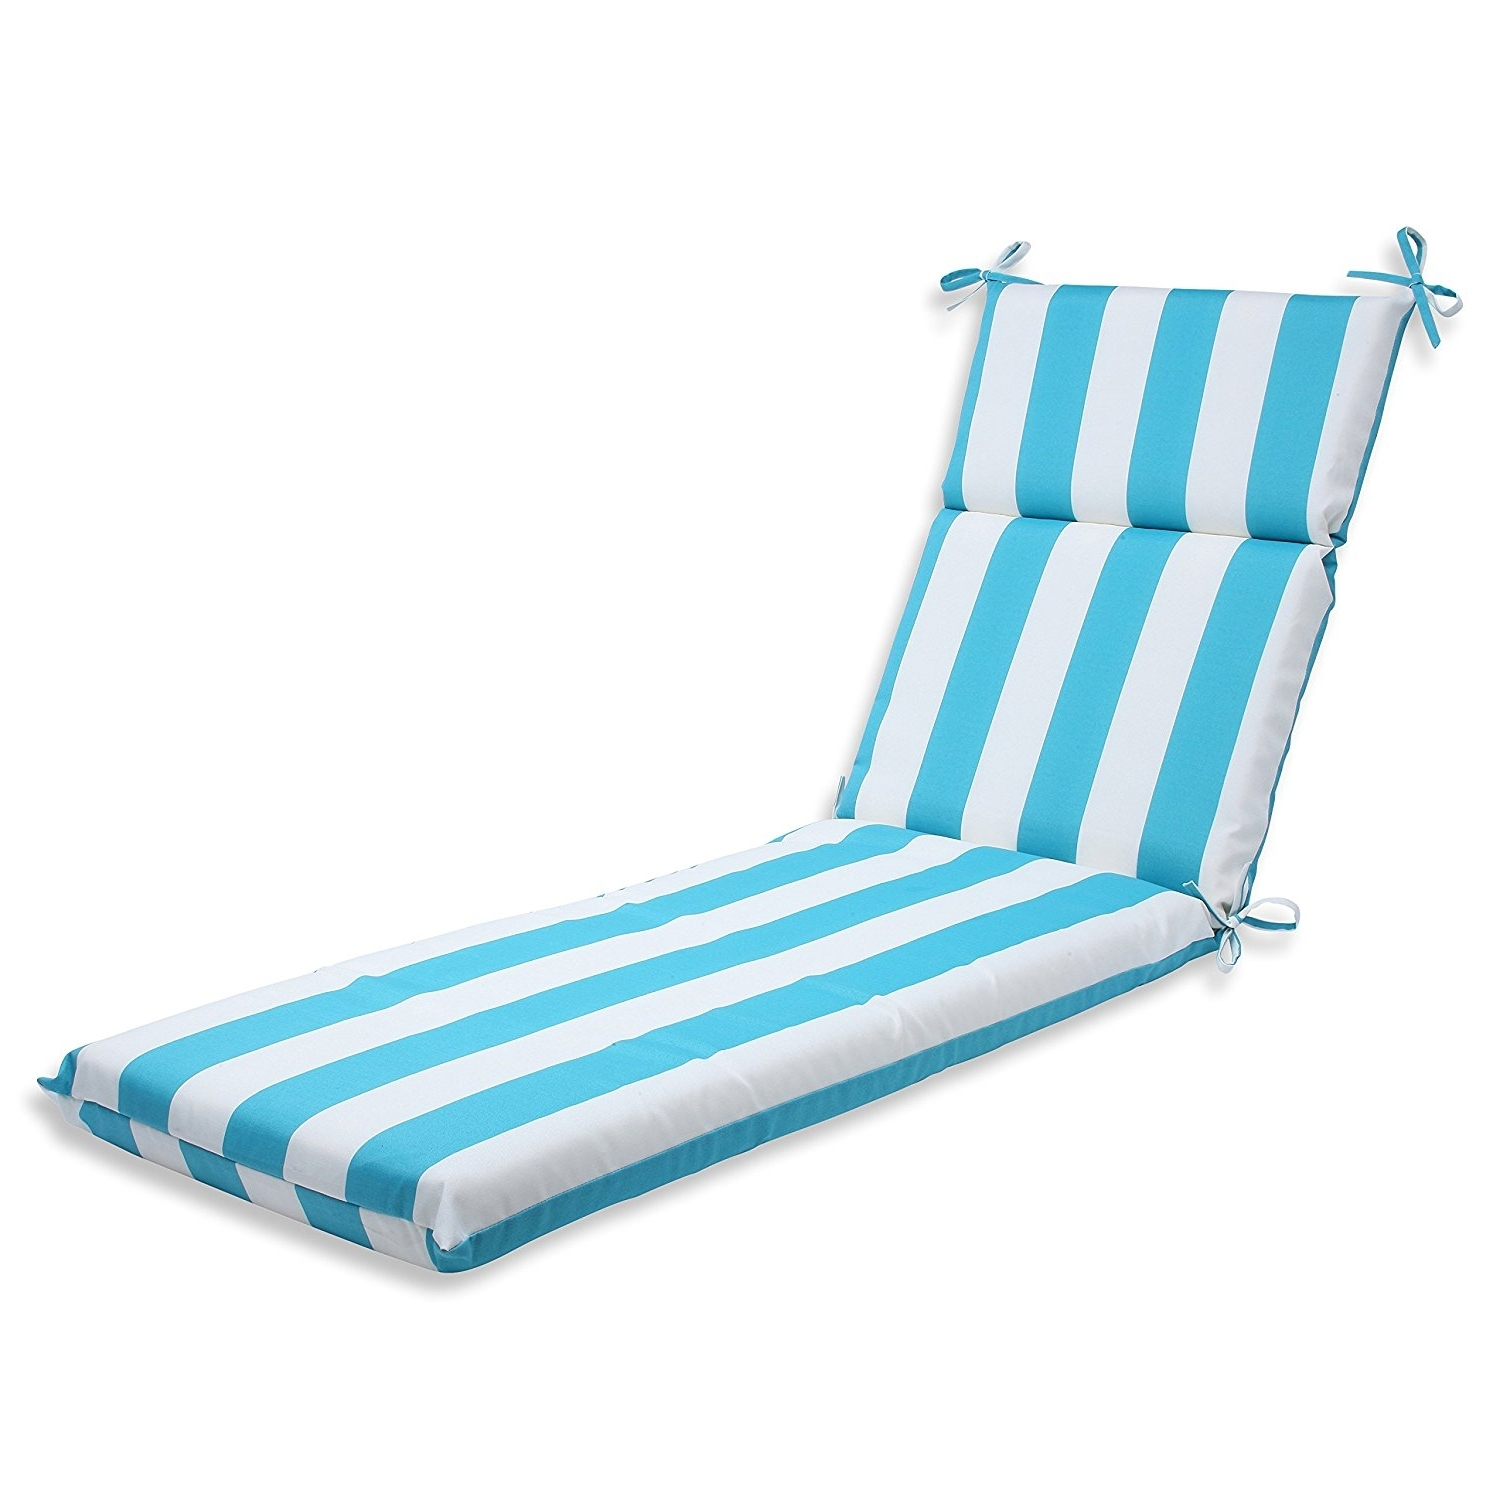 Preferred Outdoor Chaise Lounge Cushions Within Amazon: Pillow Perfect Outdoor Cabana Stripe Chaise Lounge (View 5 of 15)